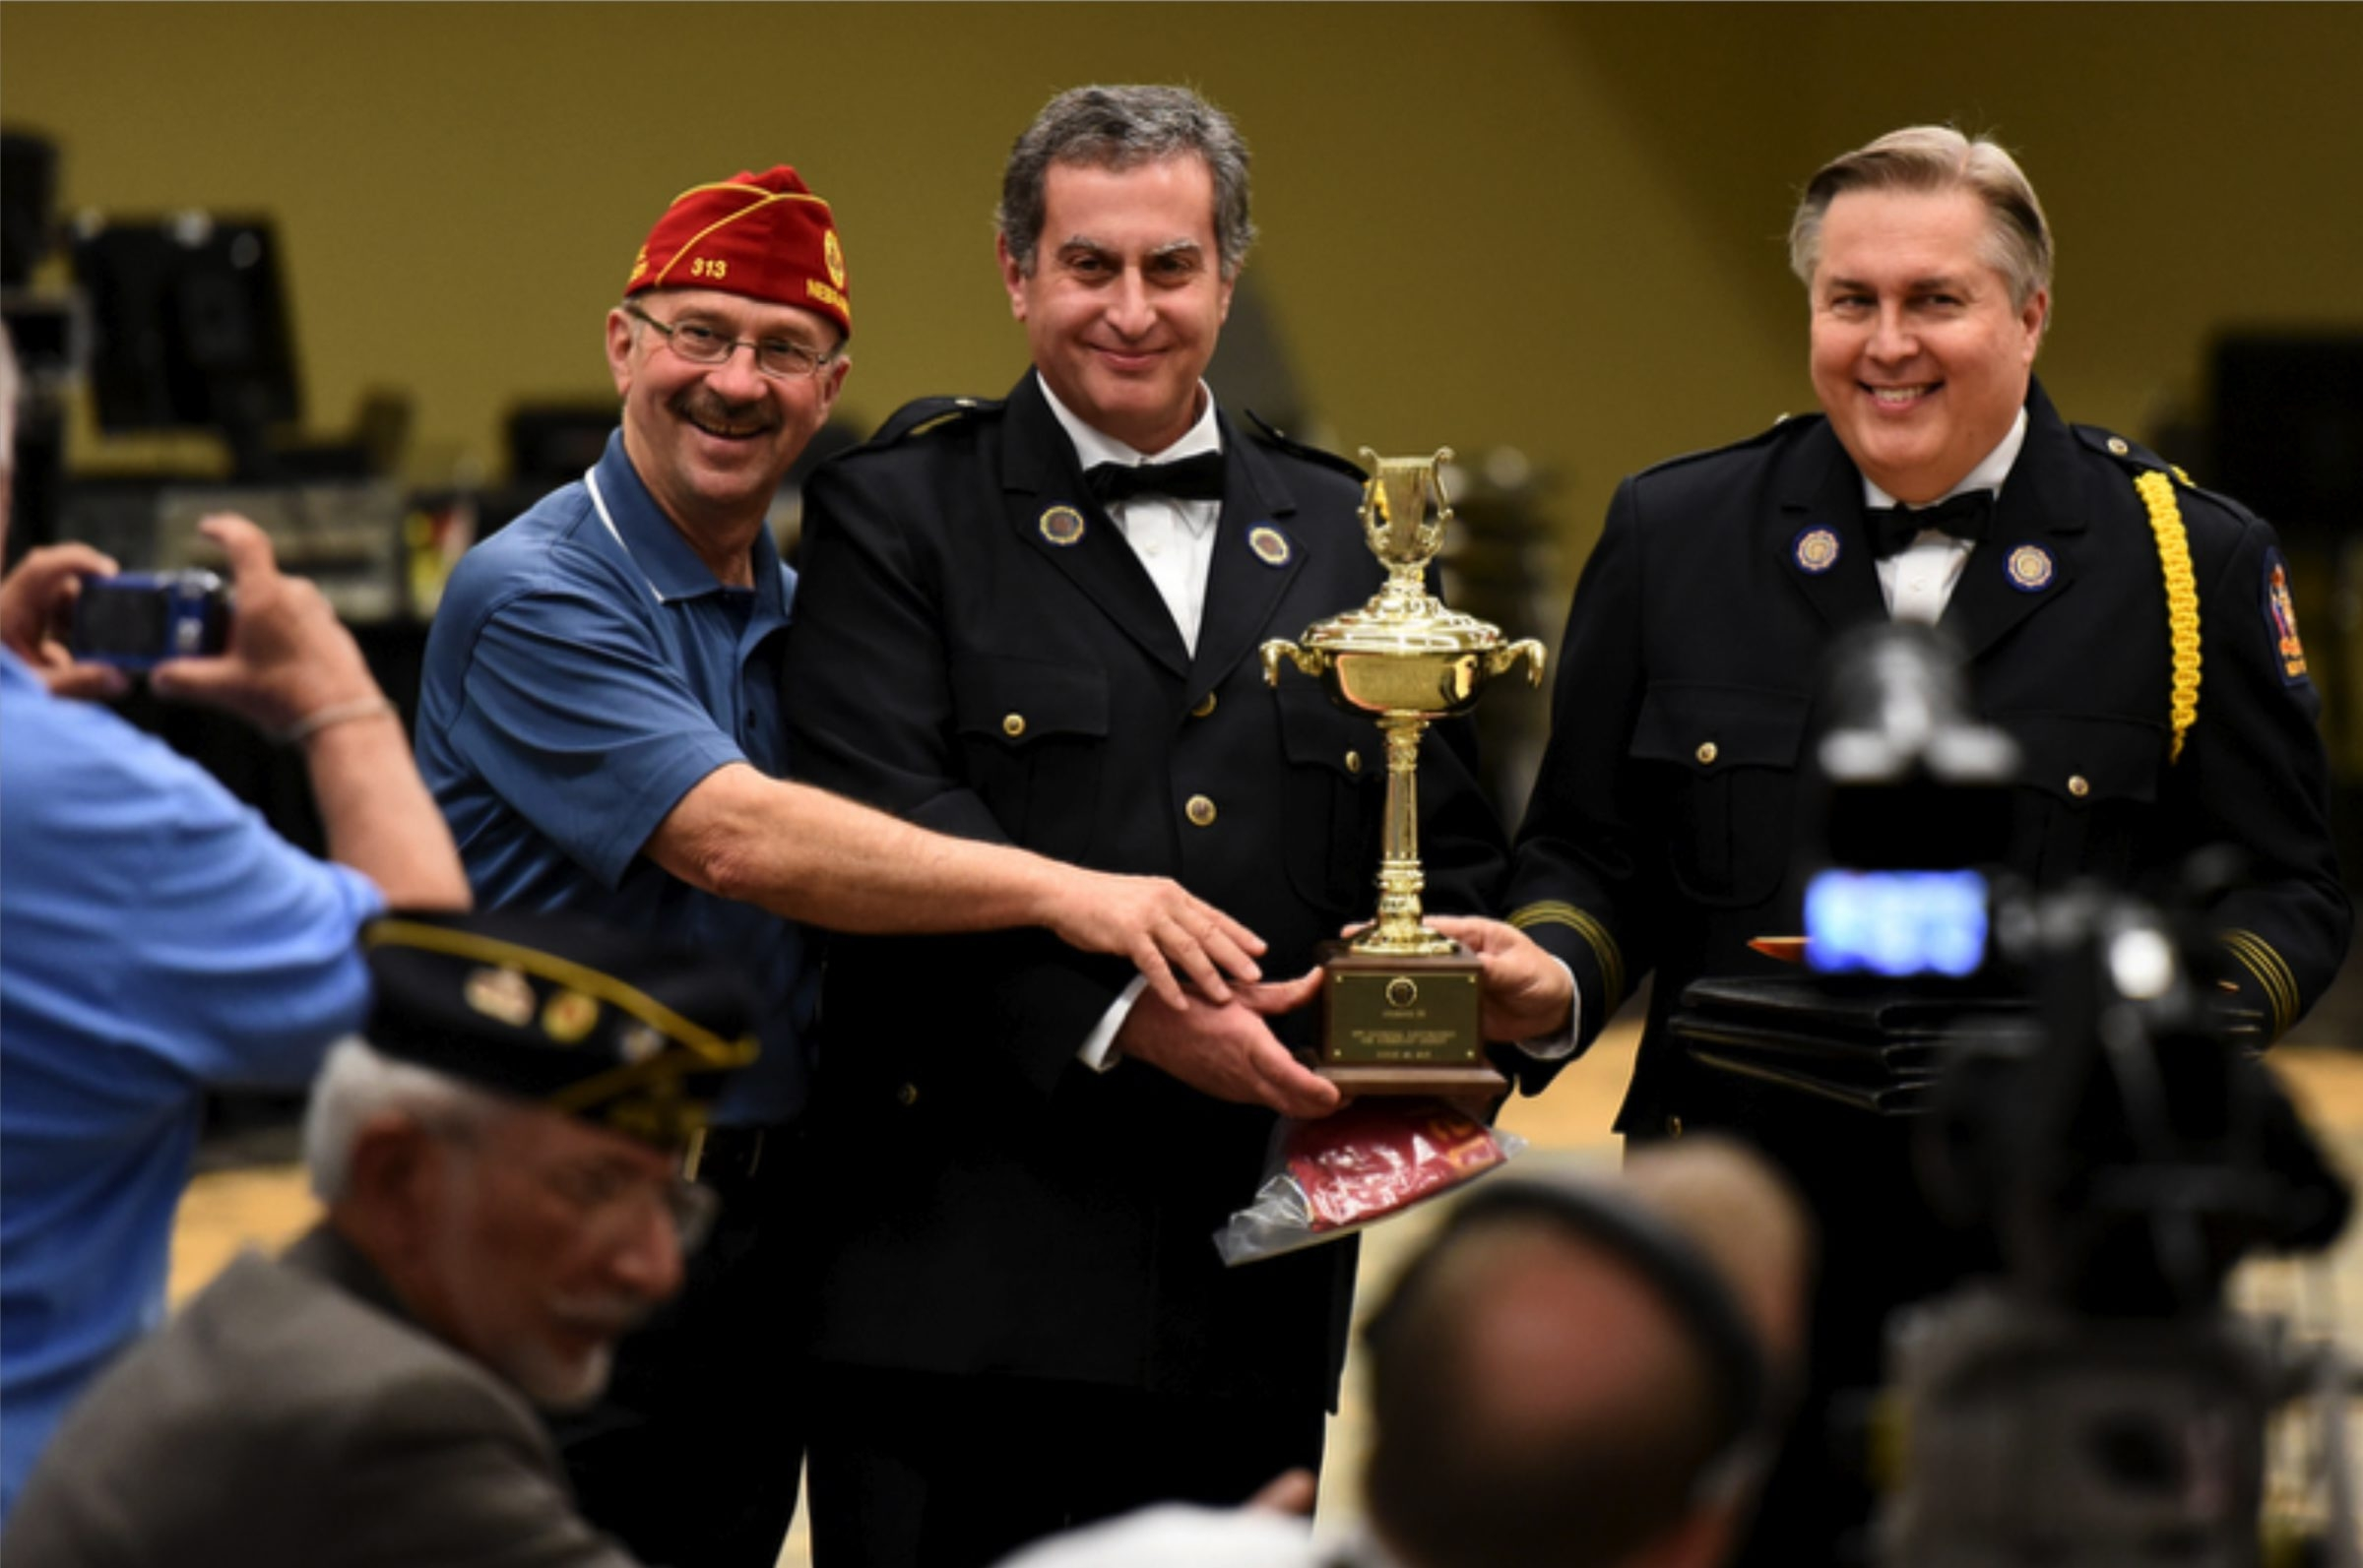 American Legion Band of the Tonawandas president David Abrahamian, center, and music director Michael Shaw are shown with National Commander Michael D. Helm, left.